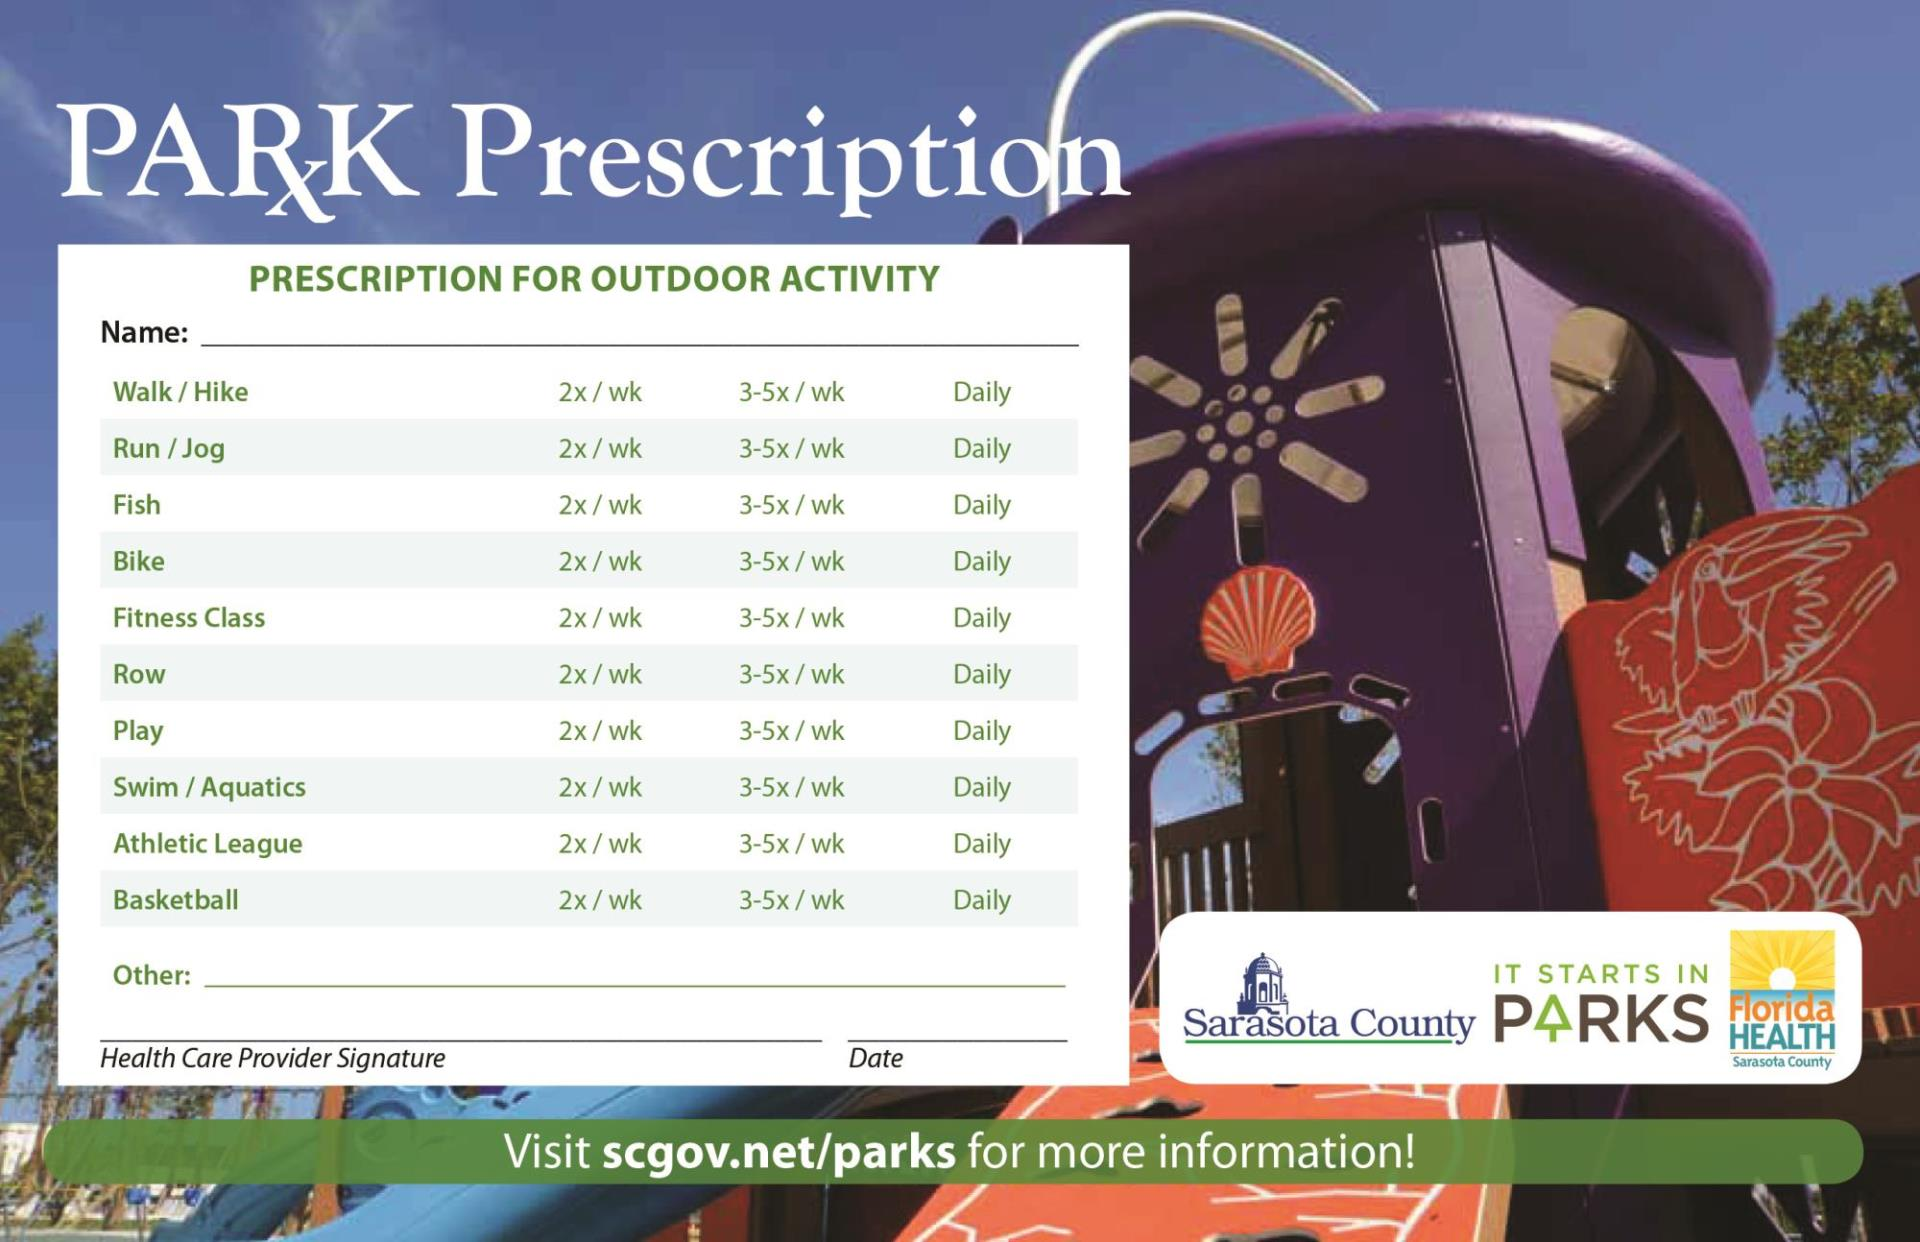 Park Prescription